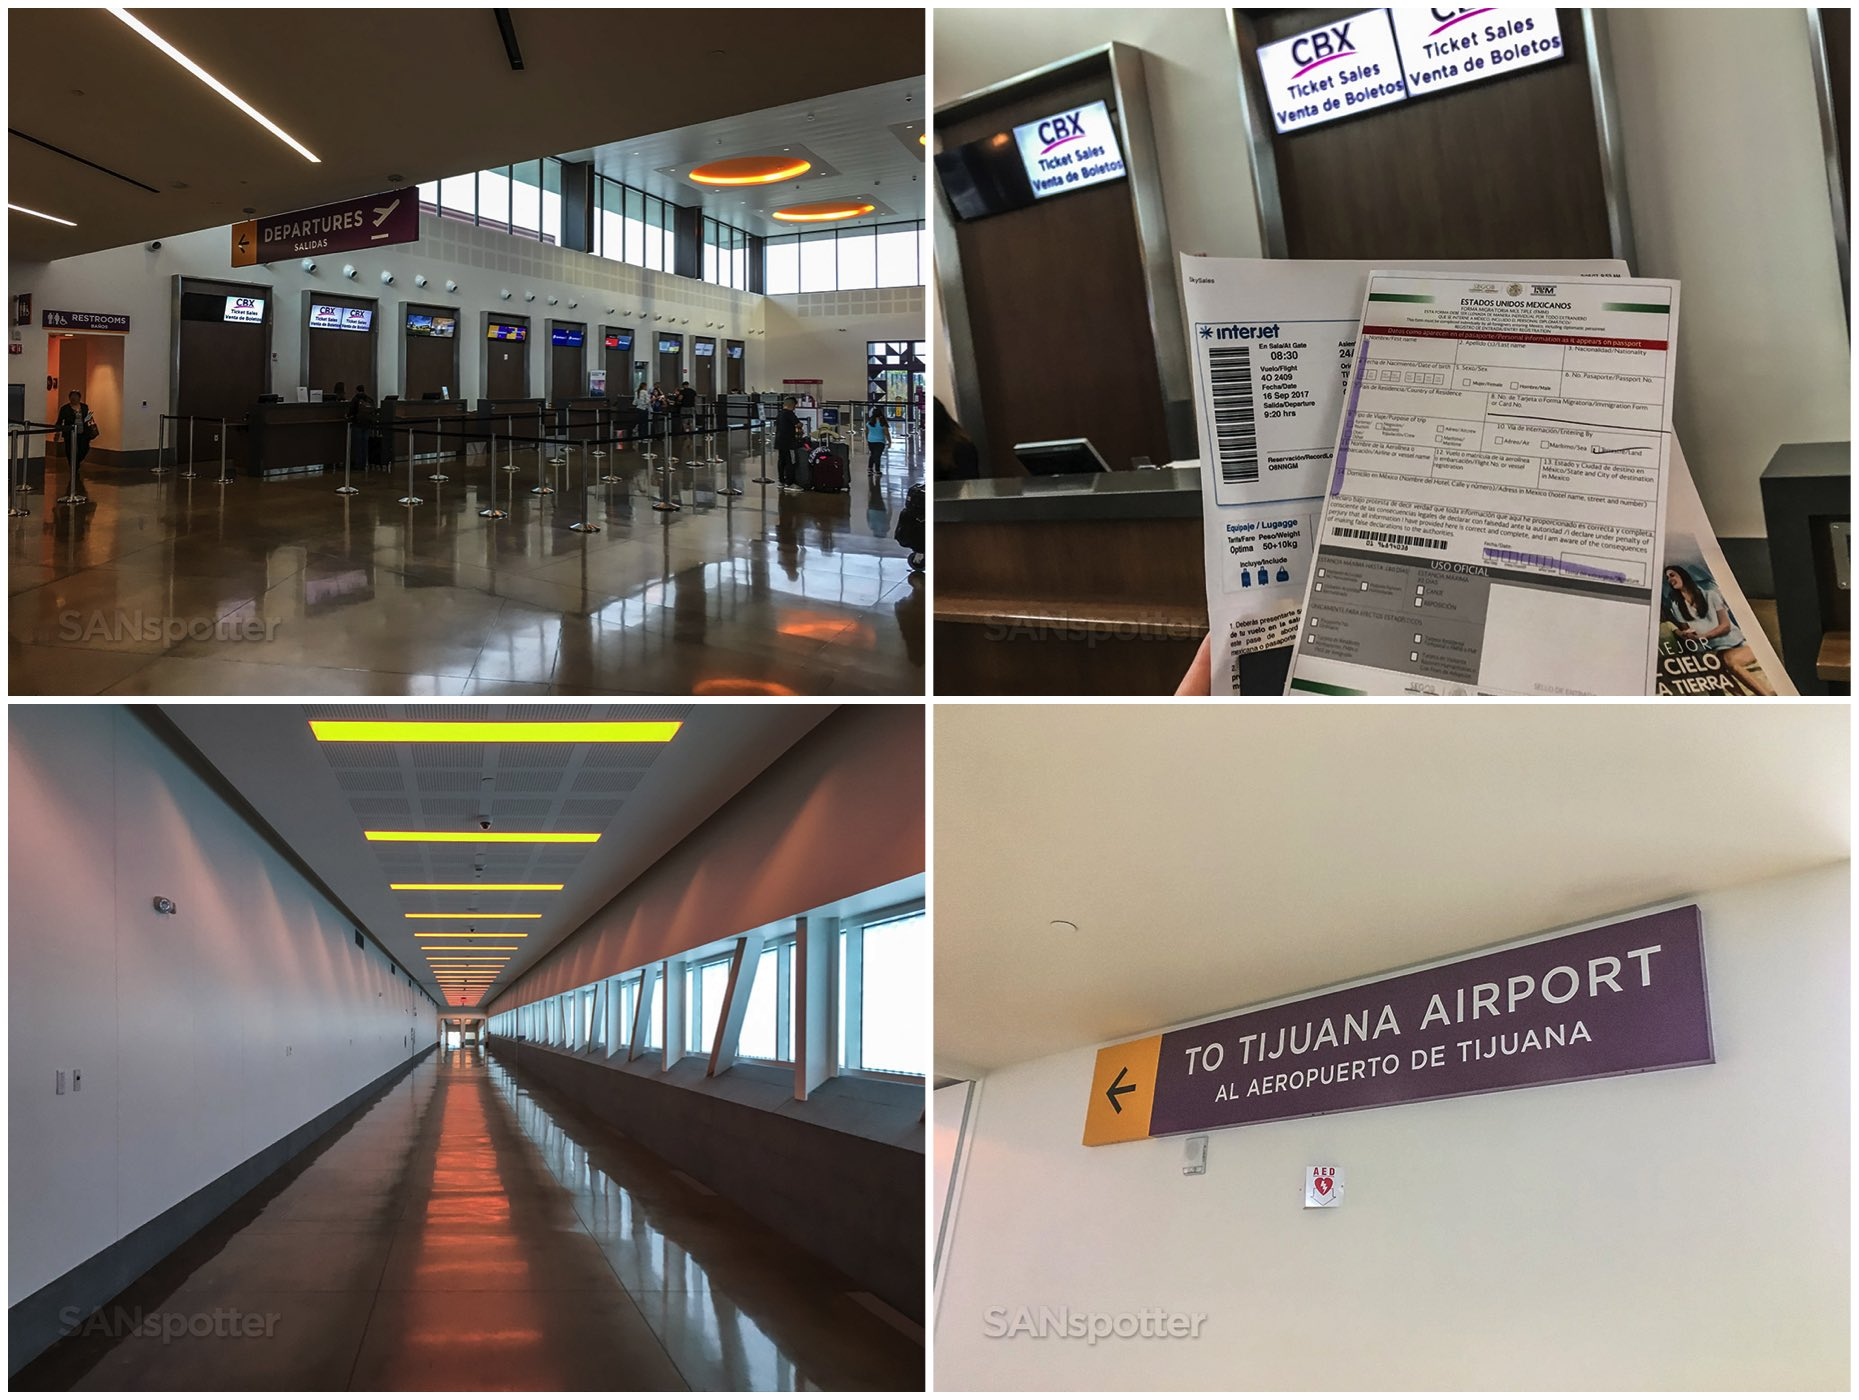 Cross border express San Diego and Tijuana airport